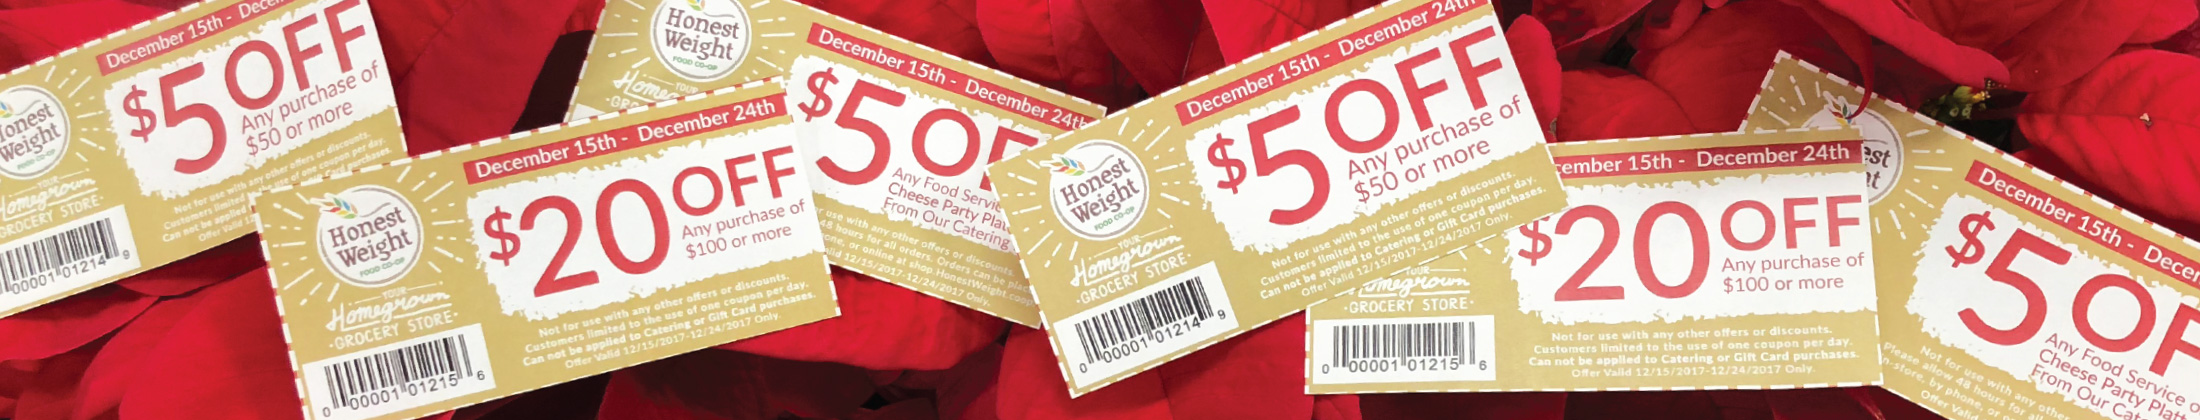 Coupons cut out and laid across a red cloth background